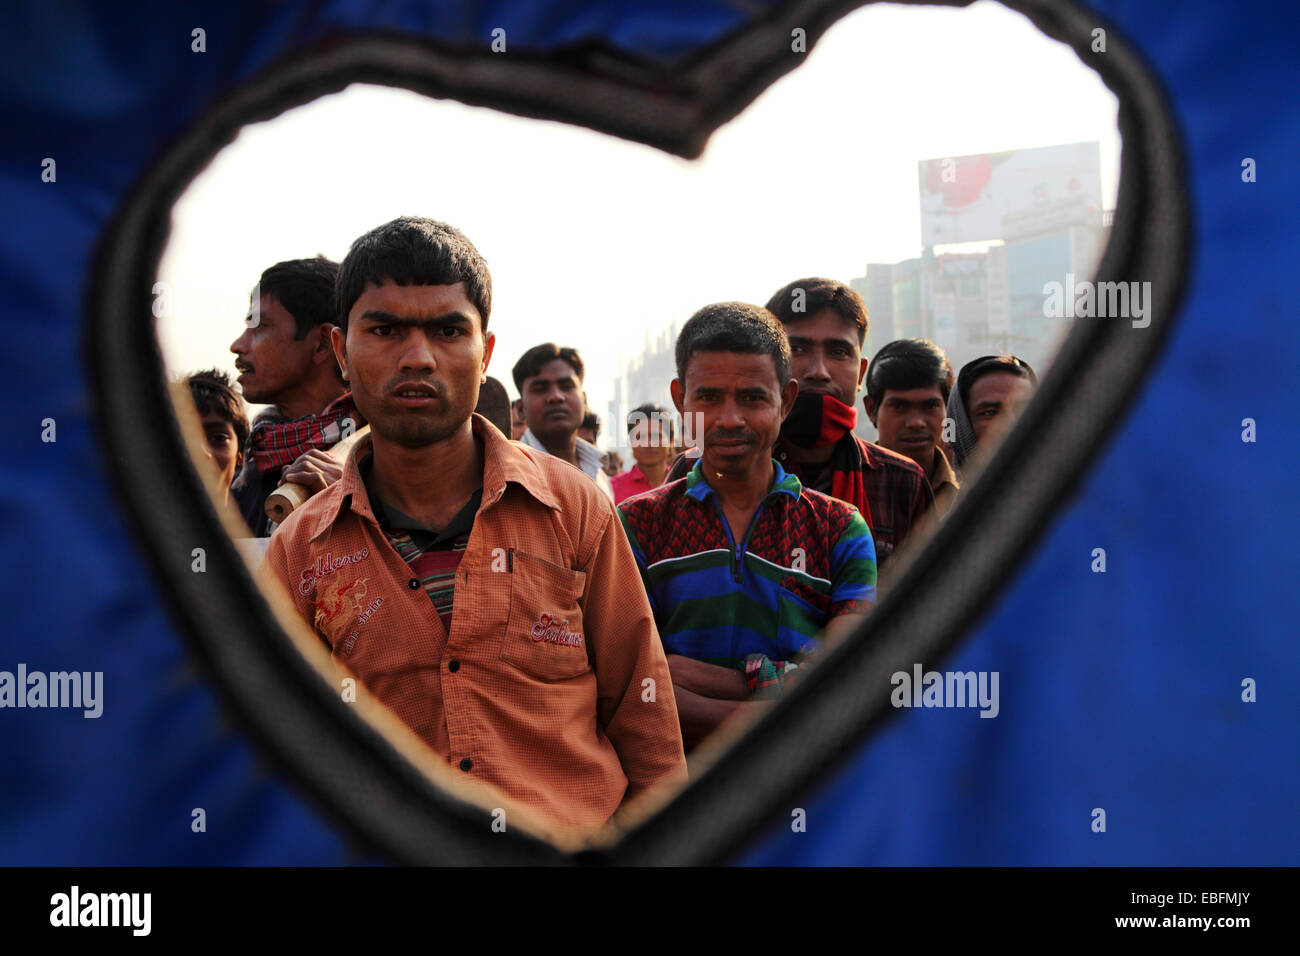 People on a street in Dhaka, Bangladesh. They are seen through the heart shape of a rickshaw canopy. - Stock Image